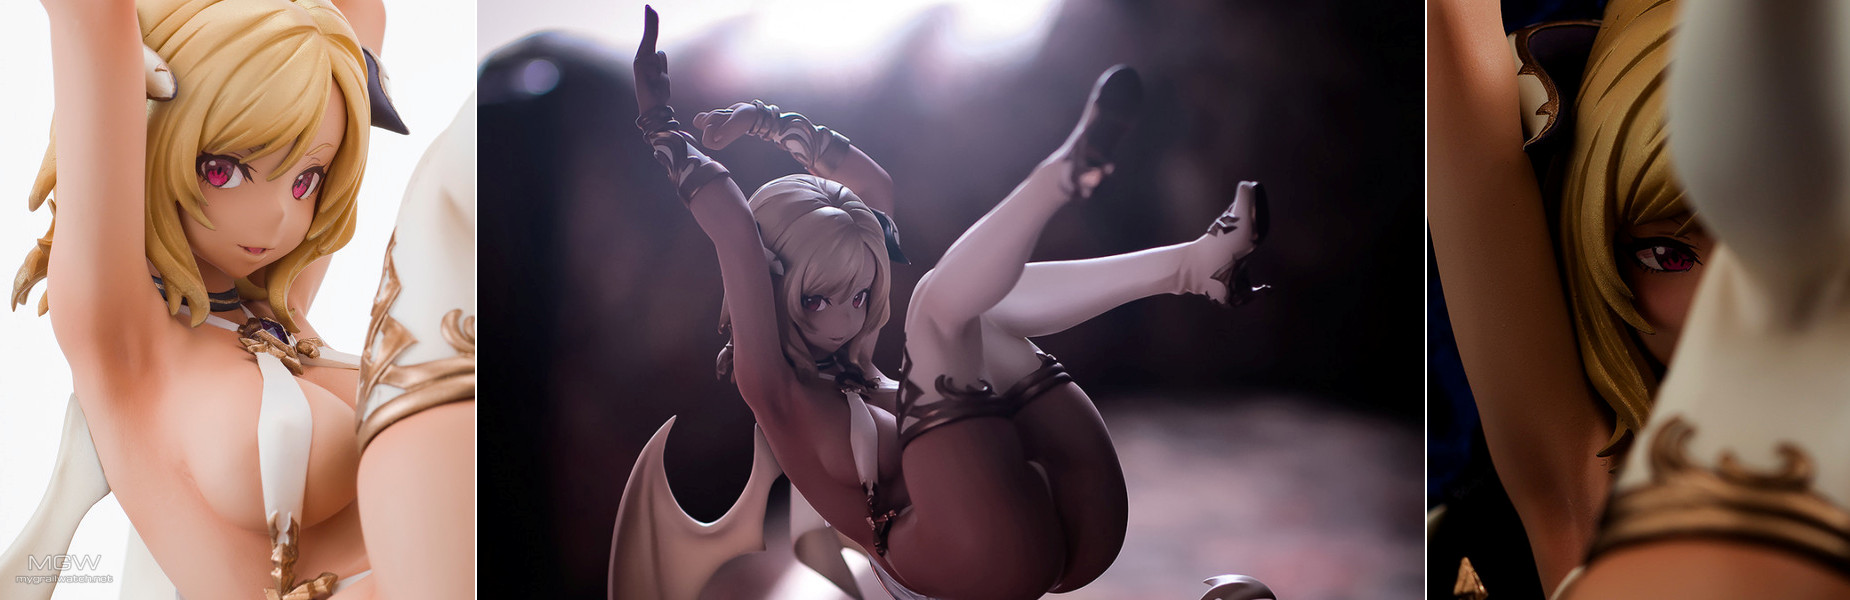 Laura Mischief by I.V.E from Caress of Venus houtengeki figure collection